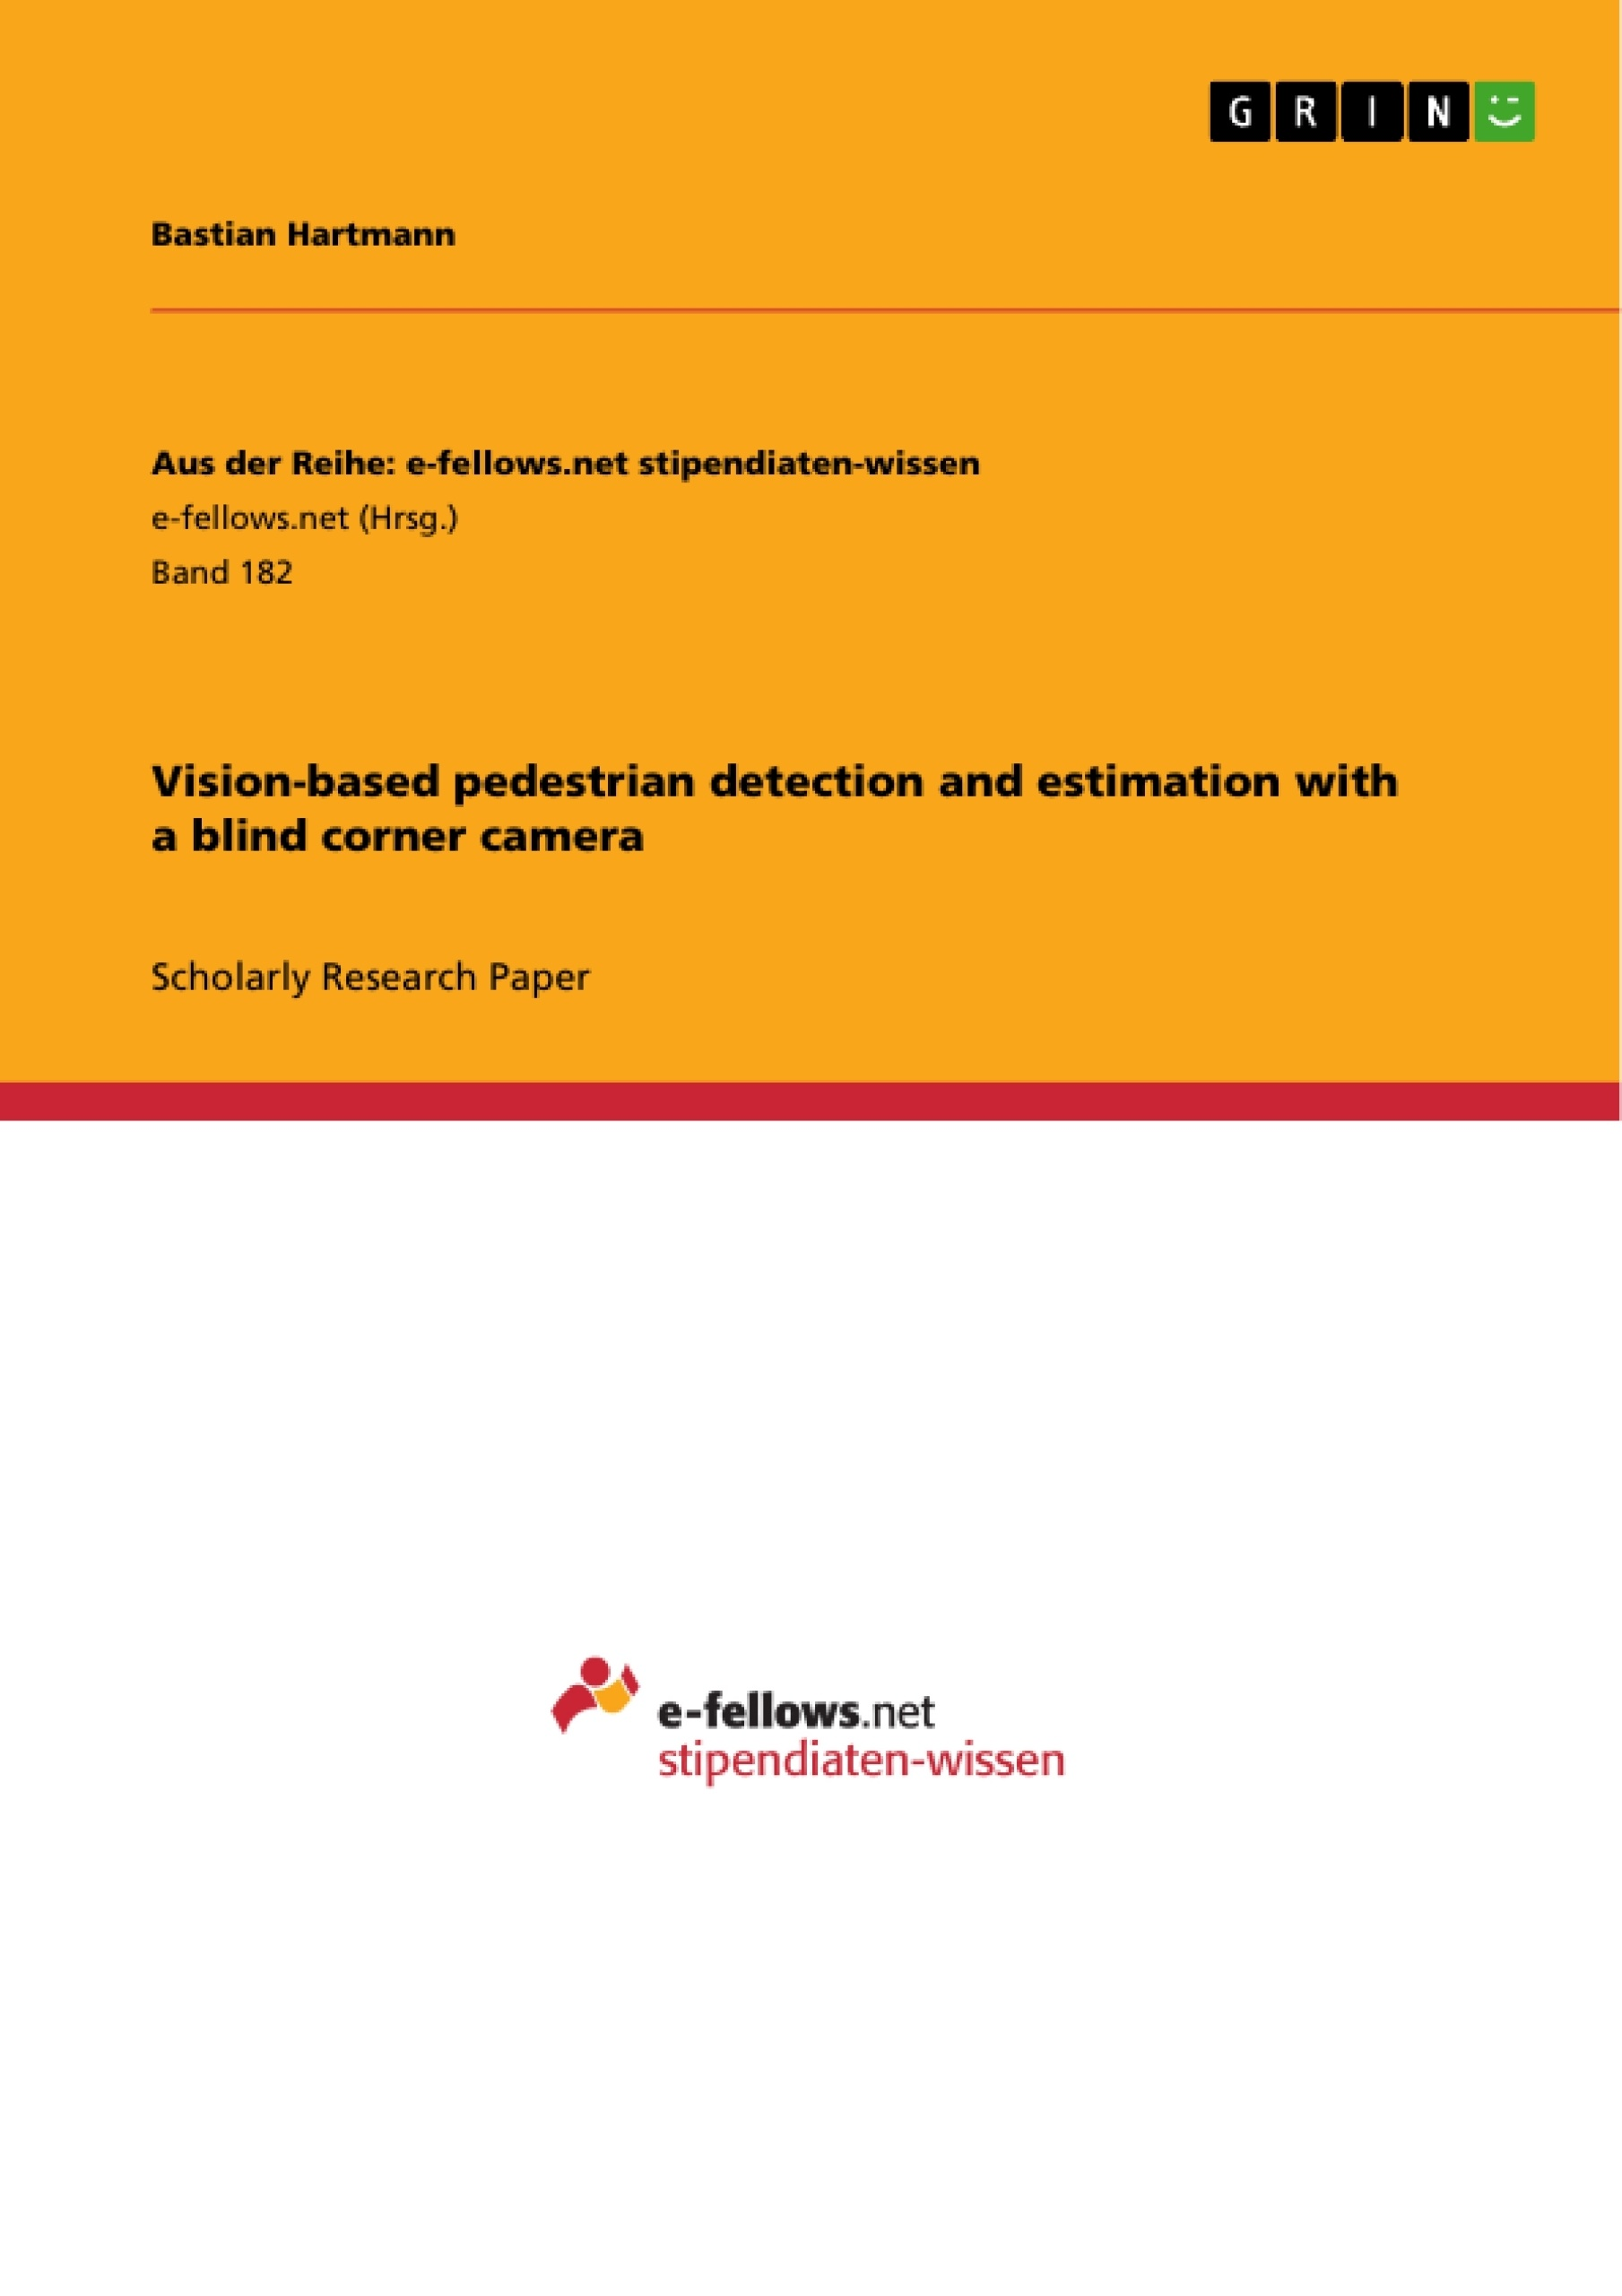 Title: Vision-based pedestrian detection and estimation with a blind corner camera